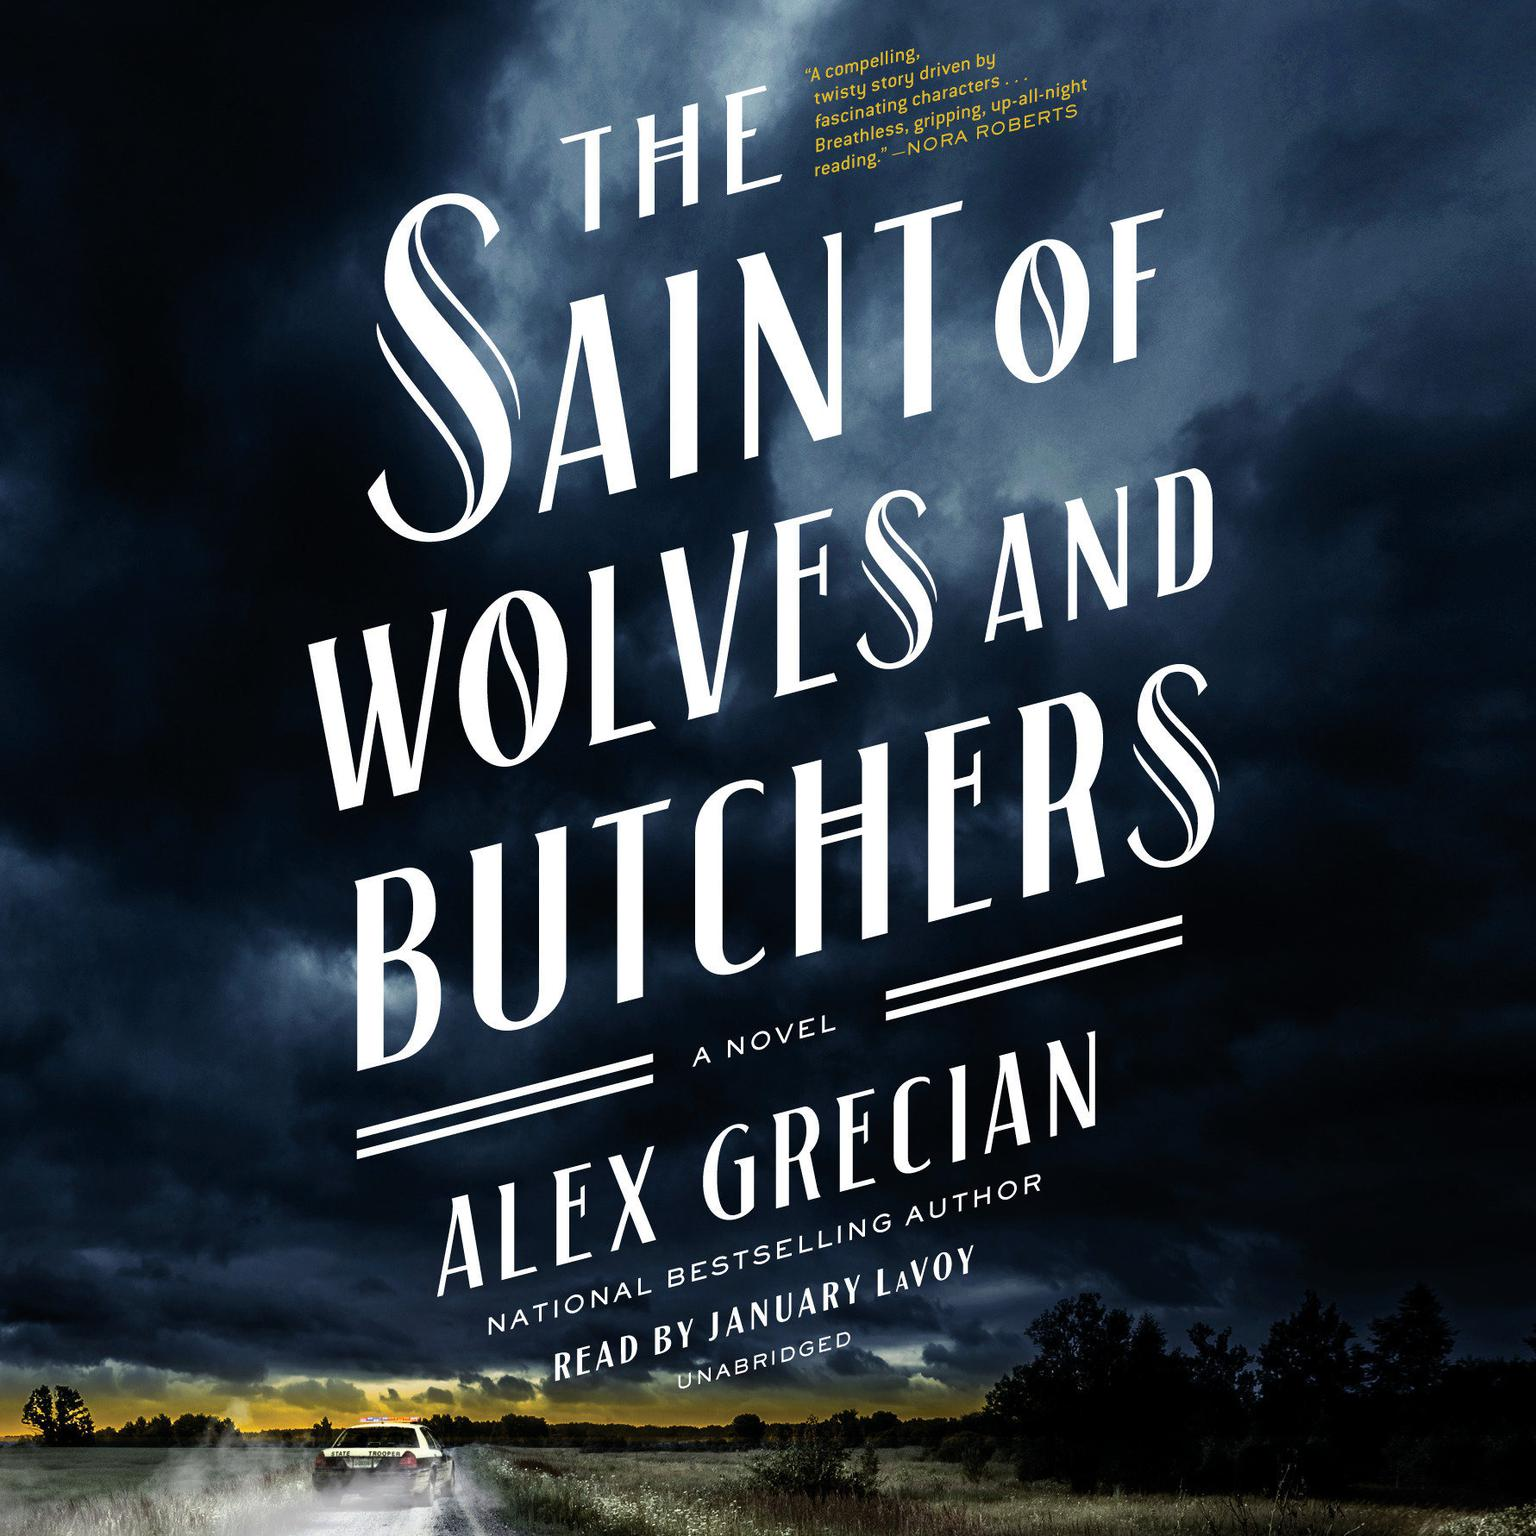 Printable The Saint of Wolves and Butchers Audiobook Cover Art